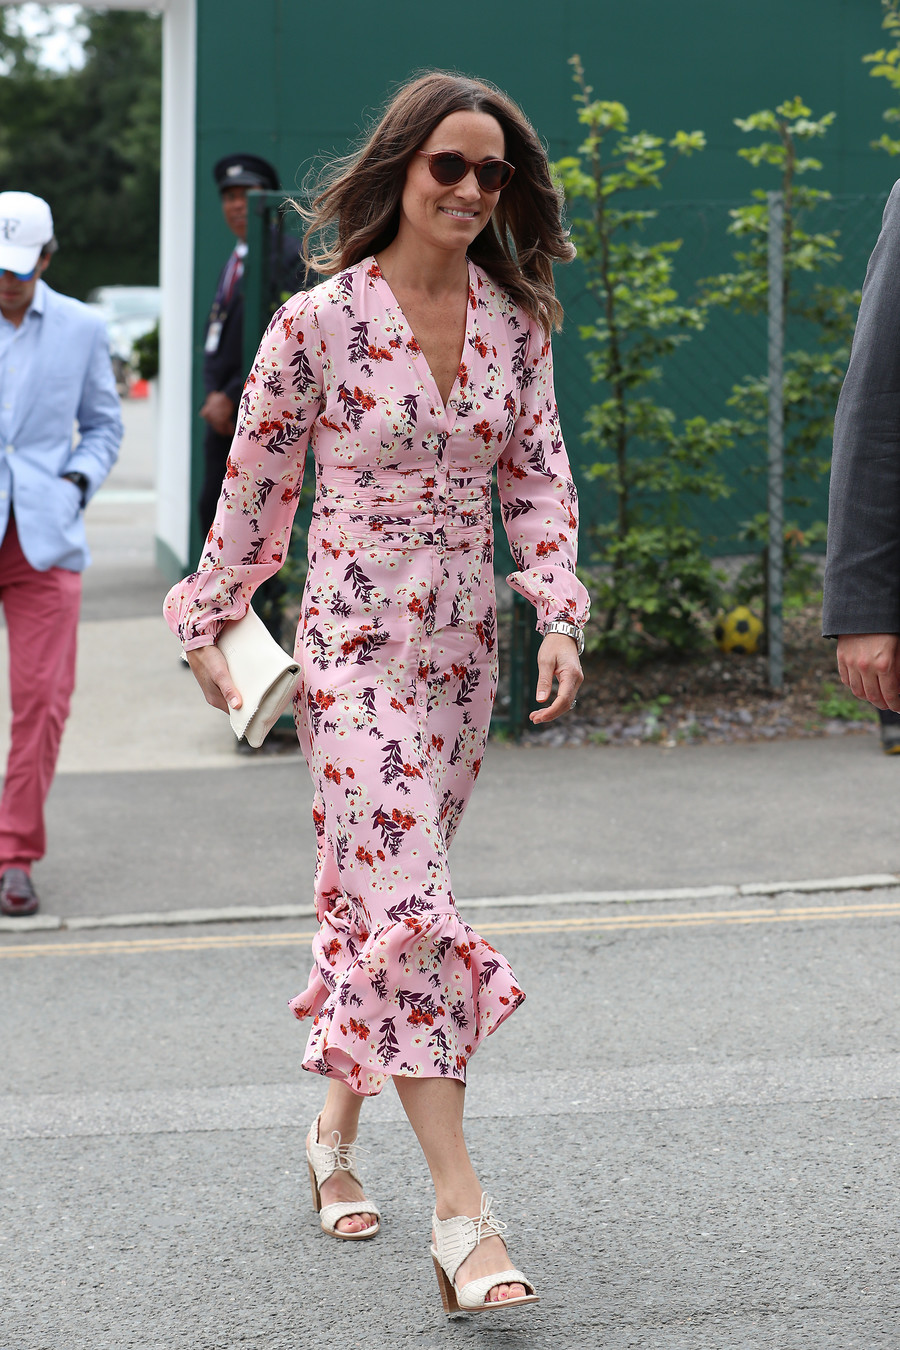 Pippa Middleton / Neil Mockford / GettyImages